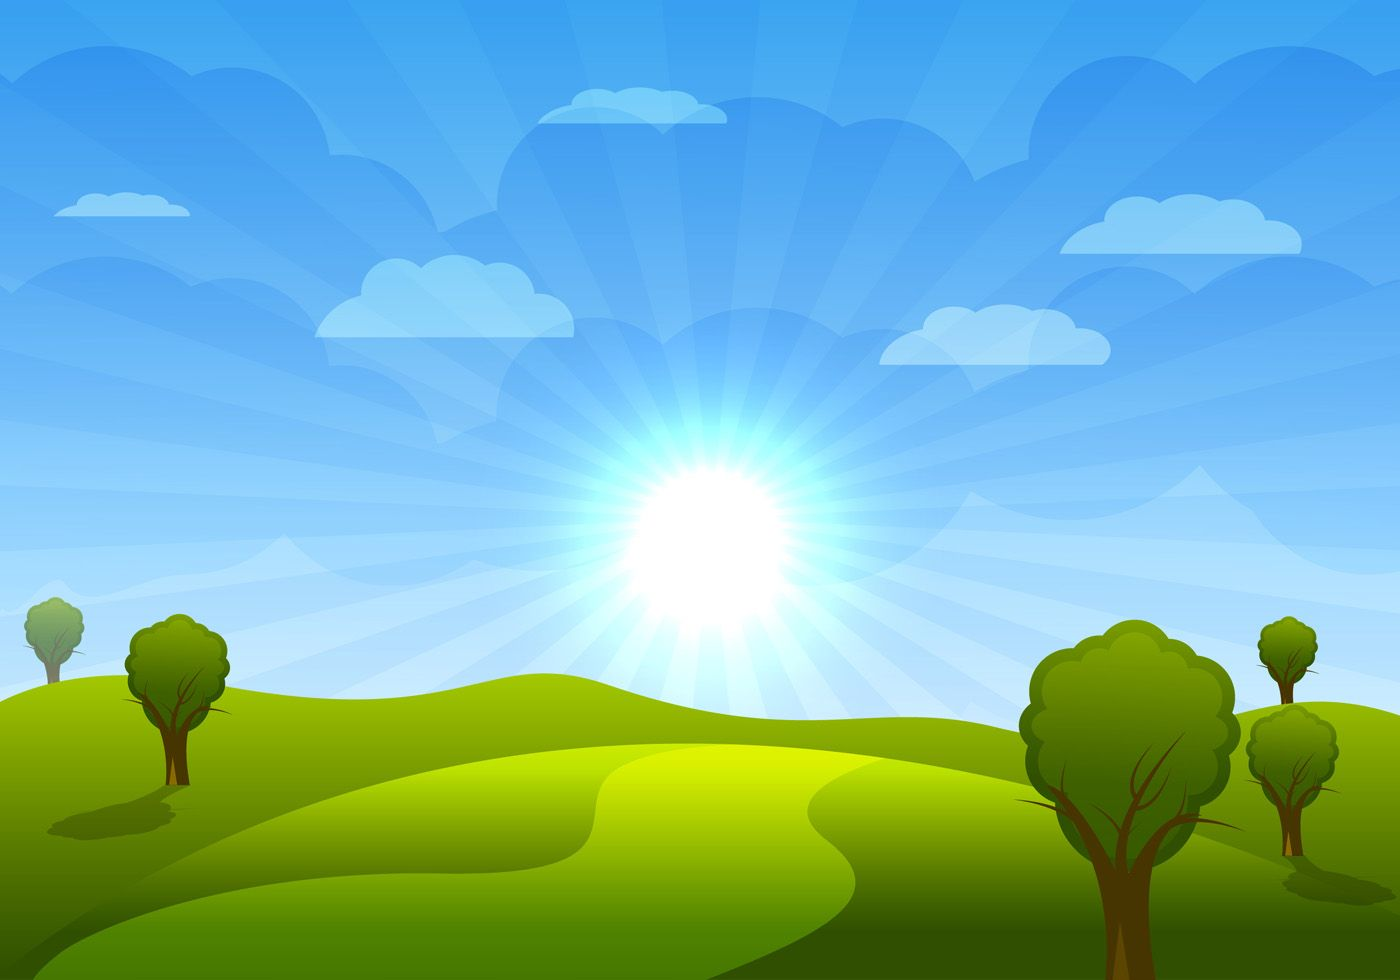 Beautiful Cartoon Landscape With Trees And Clouds Vector Illustration Perspektiva